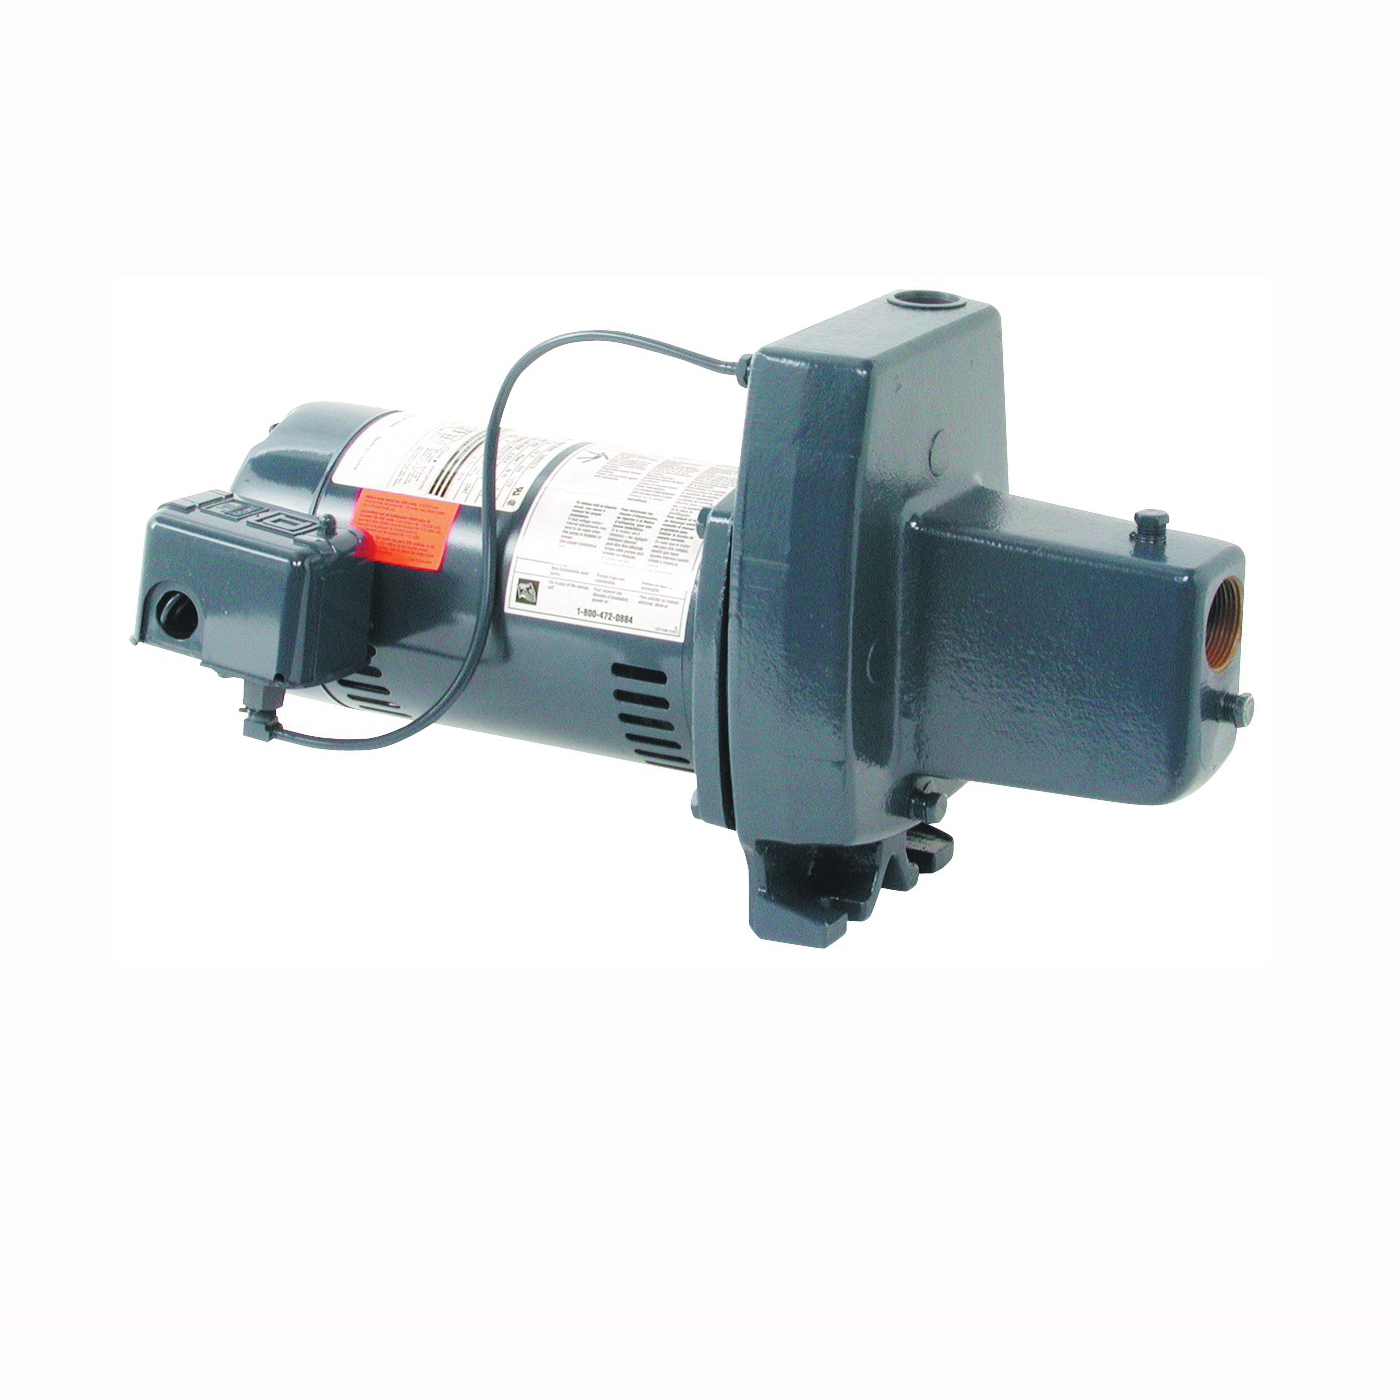 Picture of Sta-Rite FSNCH-L Jet Pump, 9.9/4.95 A, 115/230 V, 0.5 hp, 1-1/4 in Suction, 3/4 in Discharge Connection, Iron